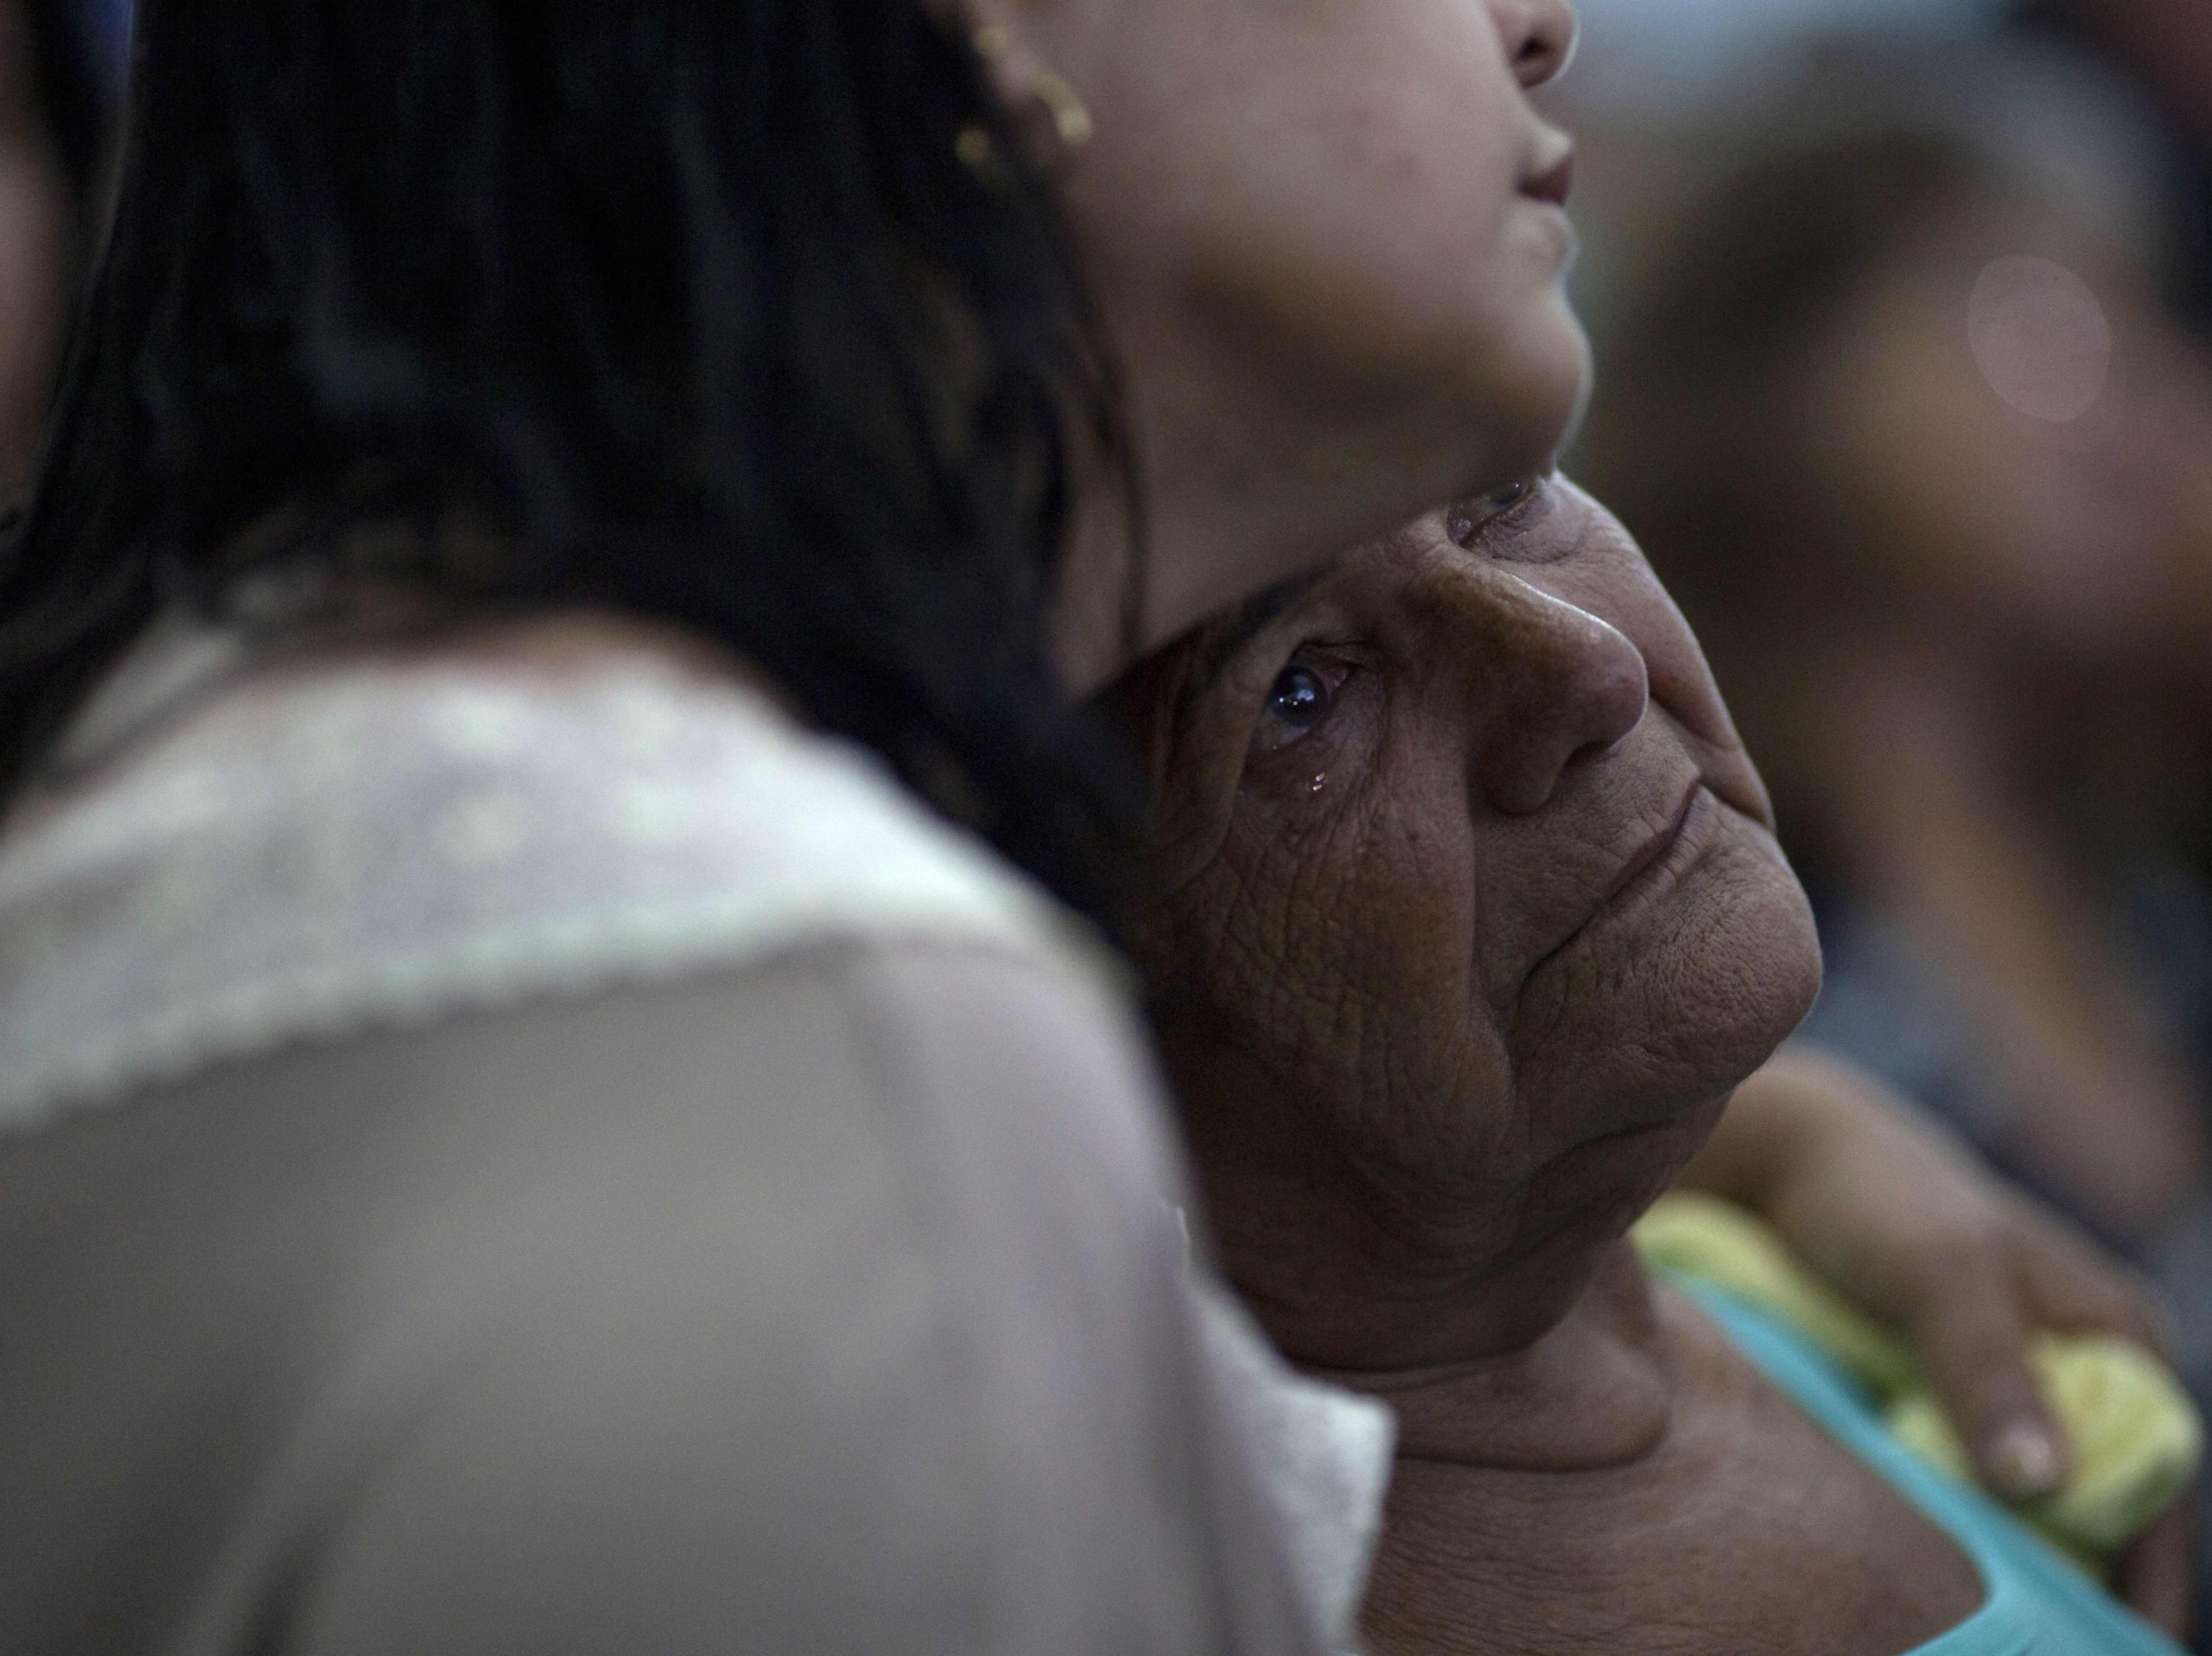 People pray during a service at the Brumadinho Matriz Church in honor of the missing people and victims in the community of Parque das Cachoeiras, after a dam belonging to Brazil's giant mining company Vale collapsed on January 25 near the city of Brumadinho in the state of Minas Gerais, southeastern Brazil, on Jan. 31, 2019.